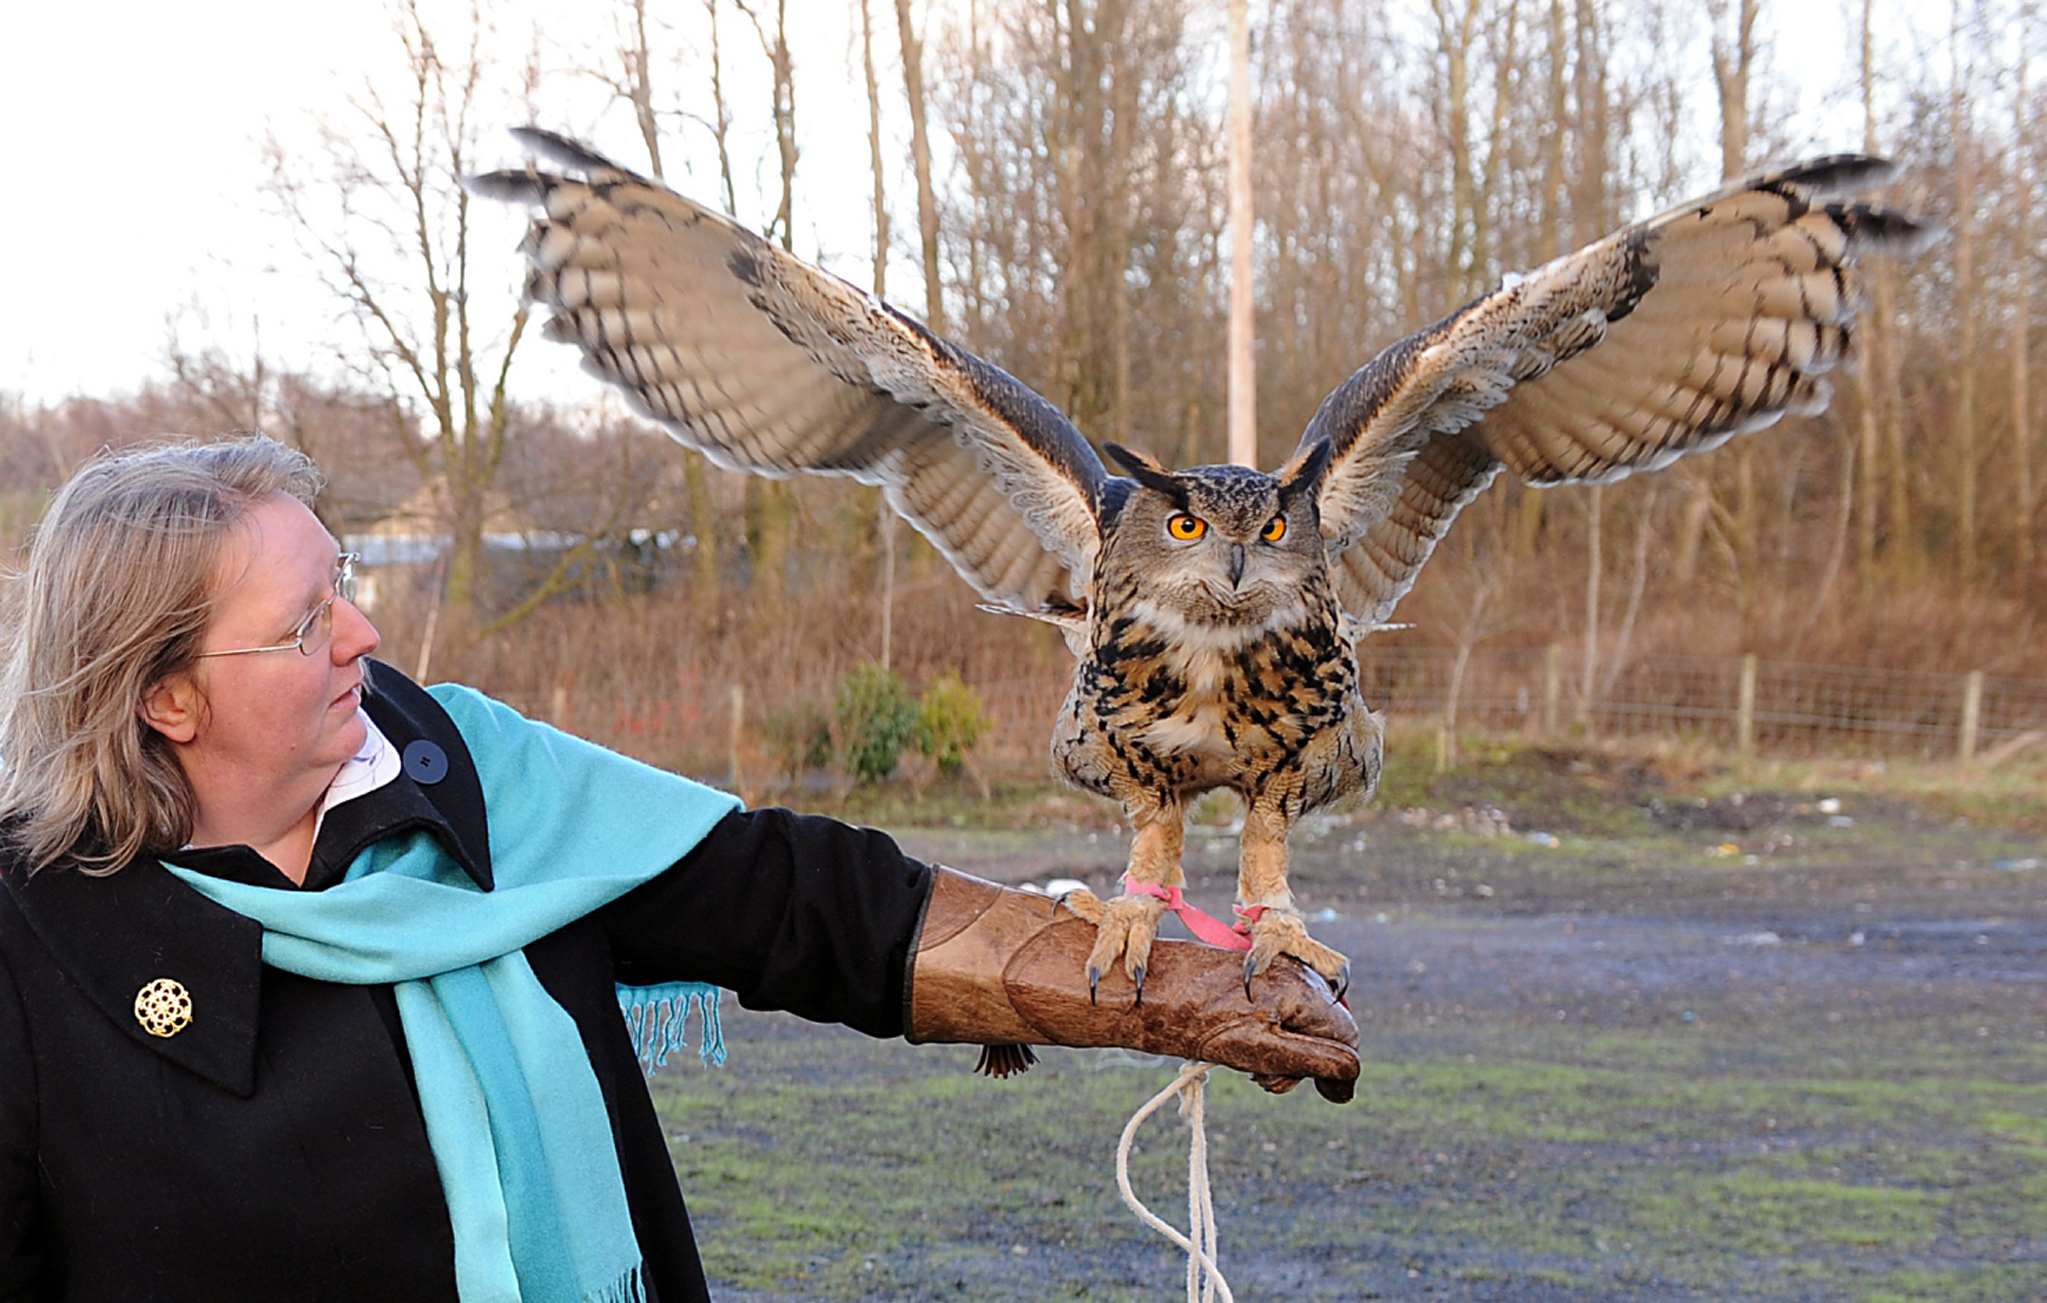 Ollie the Eagle Owl spreads his wings- Eagle couriers